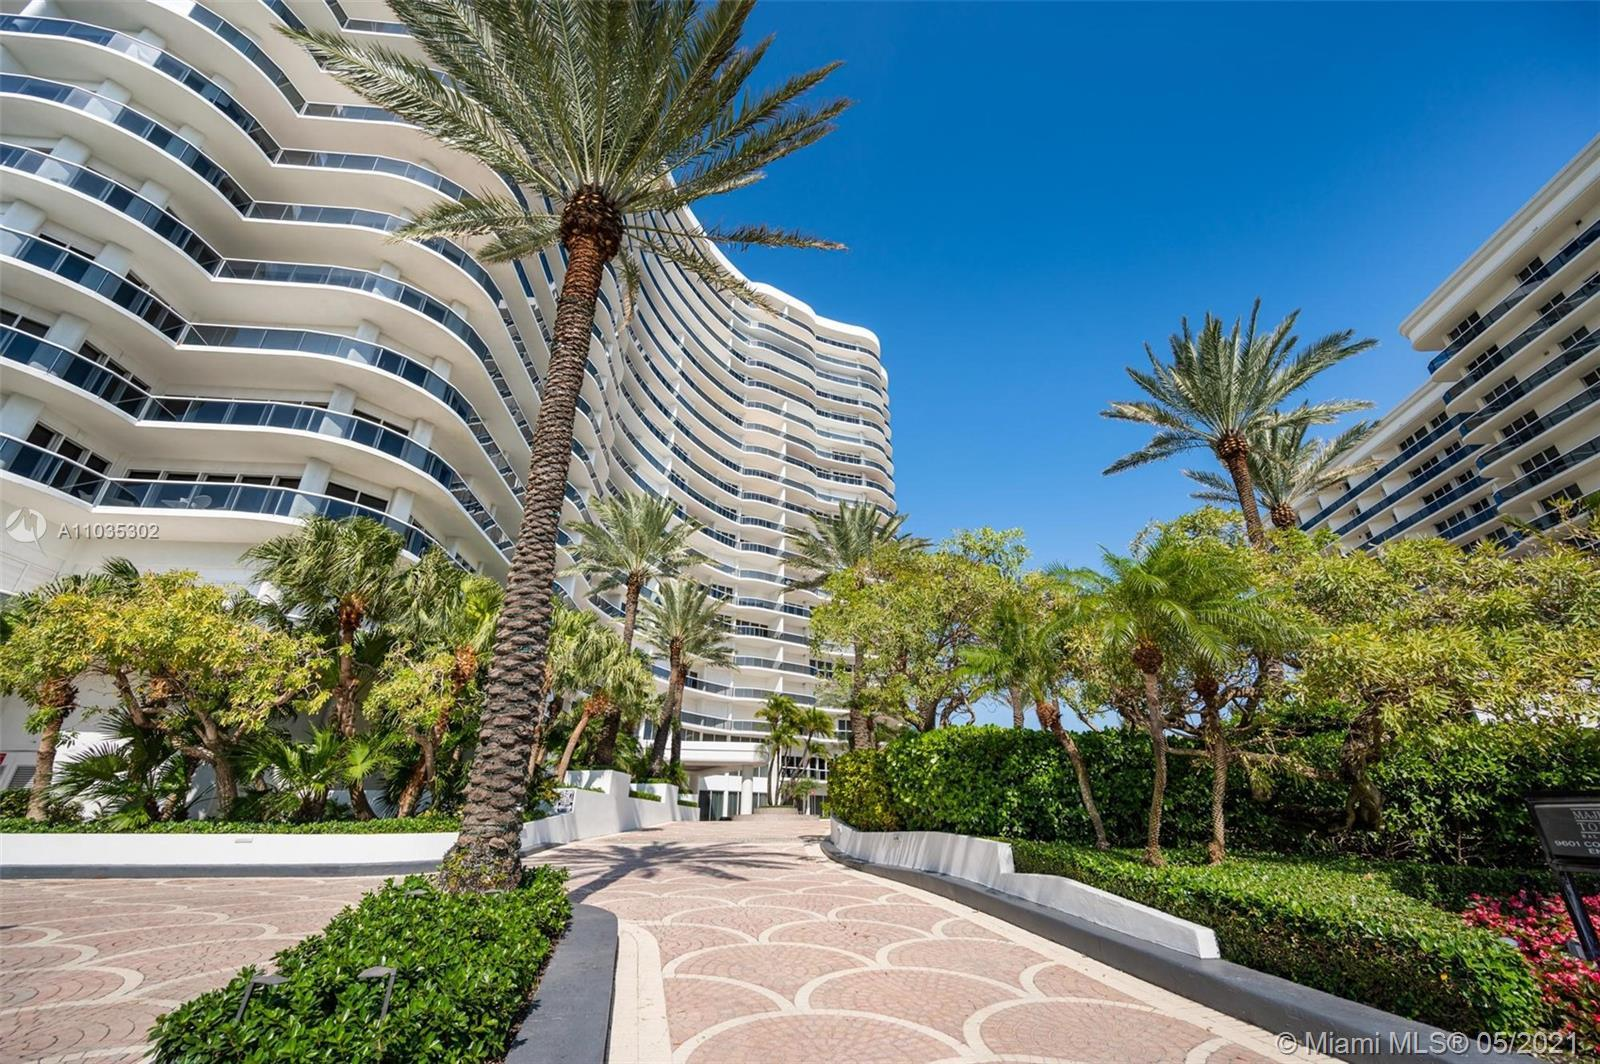 Spectacular Oceanfront Residence with Breathtaking Ocean and City Views..  2160 SQFT unit, 02 Bed 0